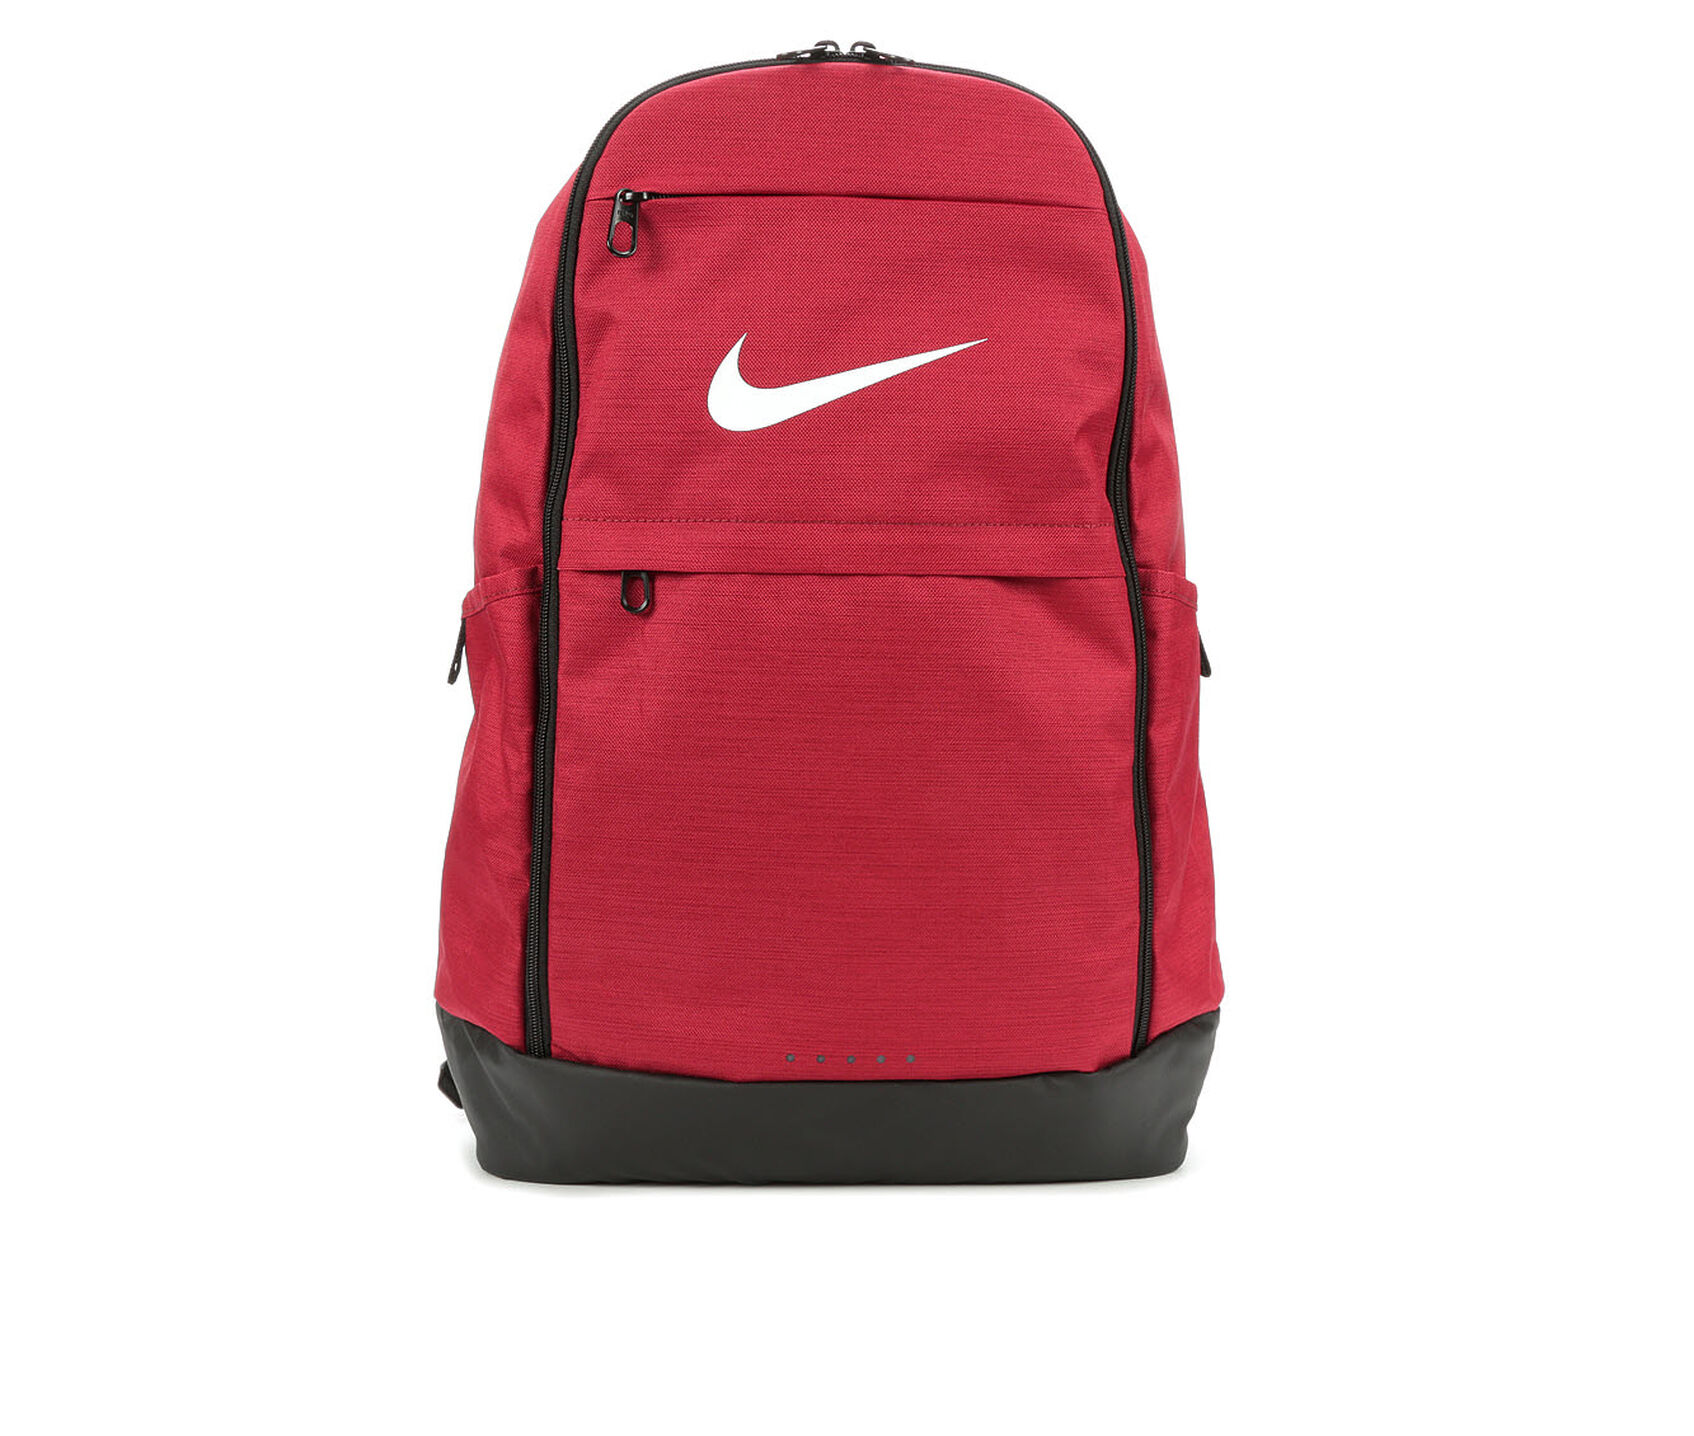 Nike Brasilia XL Backpack. Previous 5ef91fd74c34b